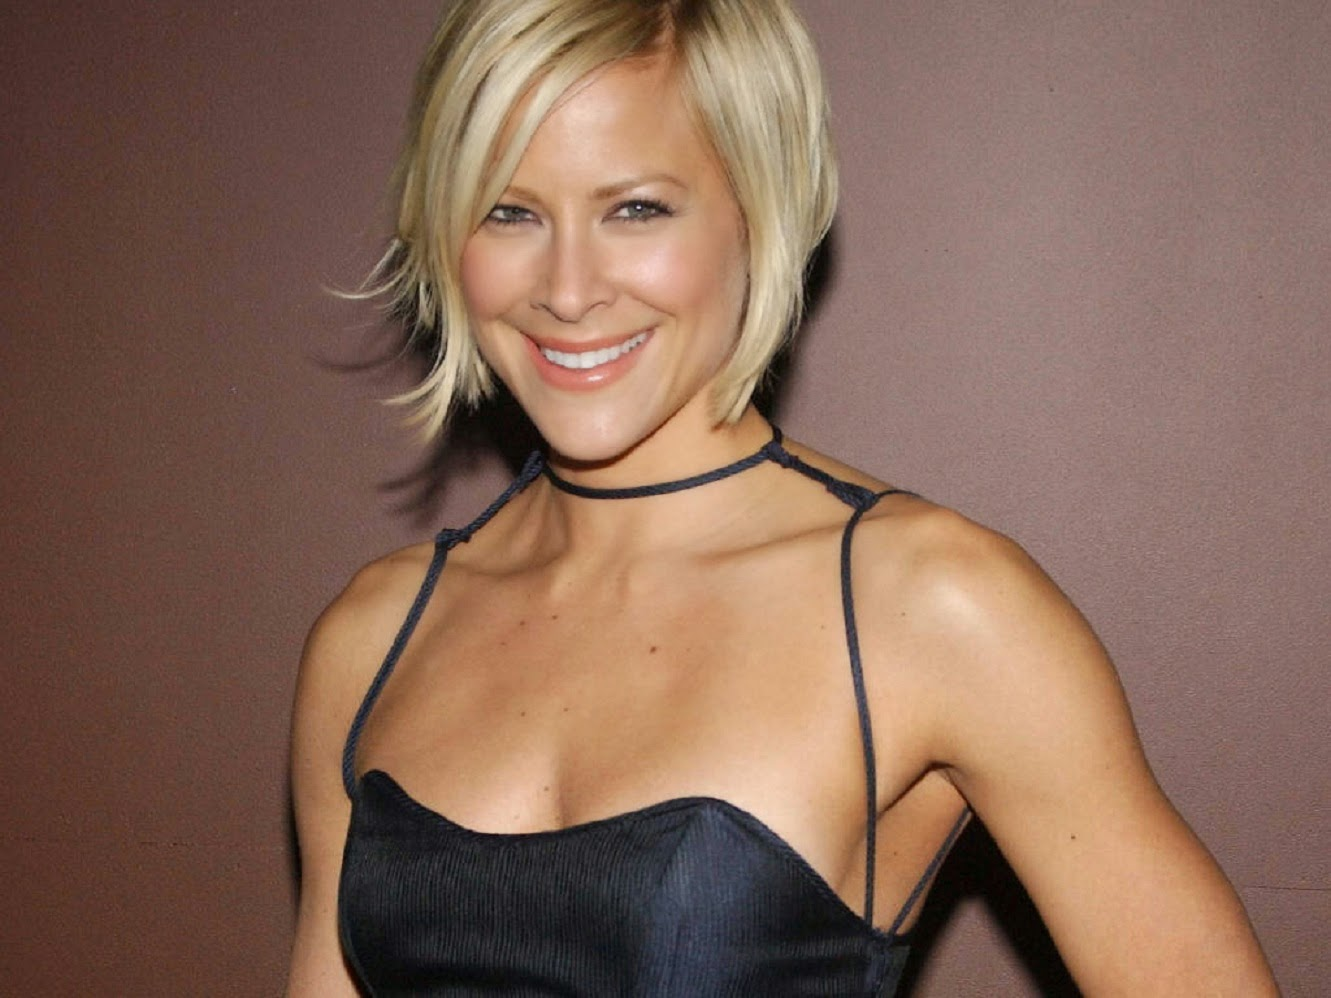 Hollywood Actress Wallpaper Brittany Daniel Hd Wallpapers